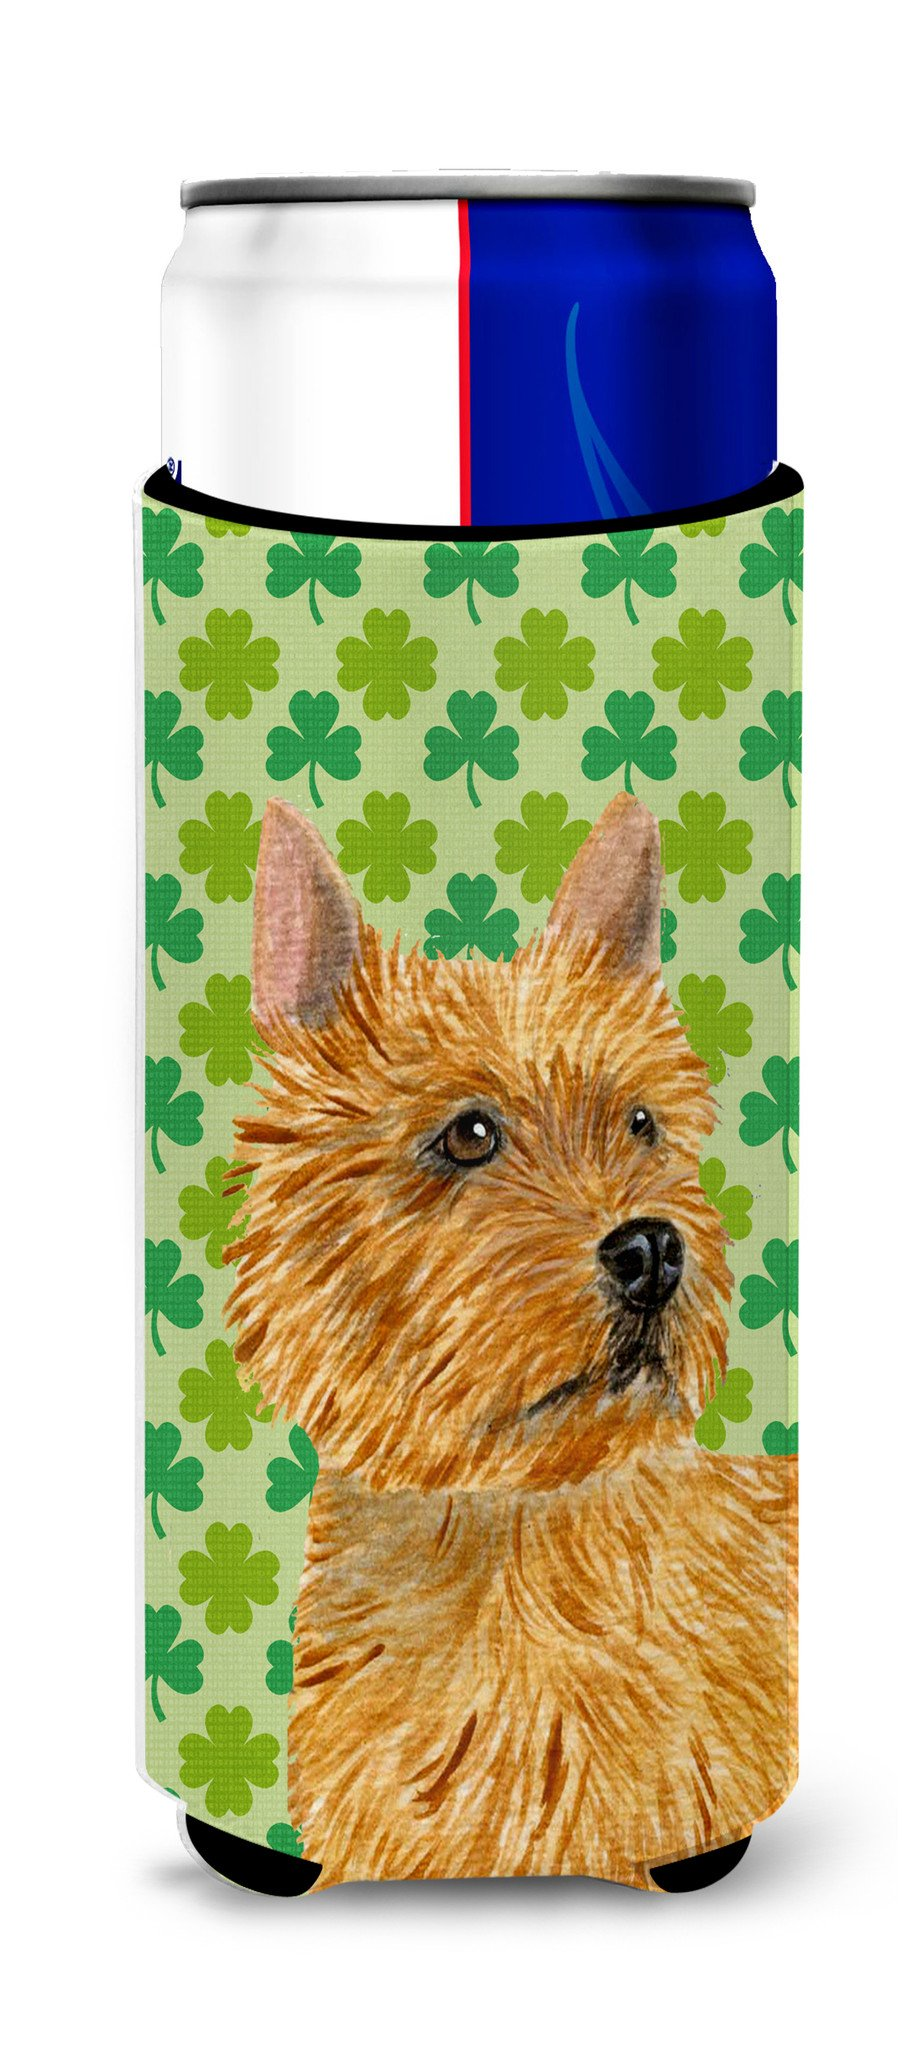 Norwich Terrier St. Patrick's Day Shamrock Portrait Ultra Beverage Insulators for slim cans SS4430MUK by Caroline's Treasures